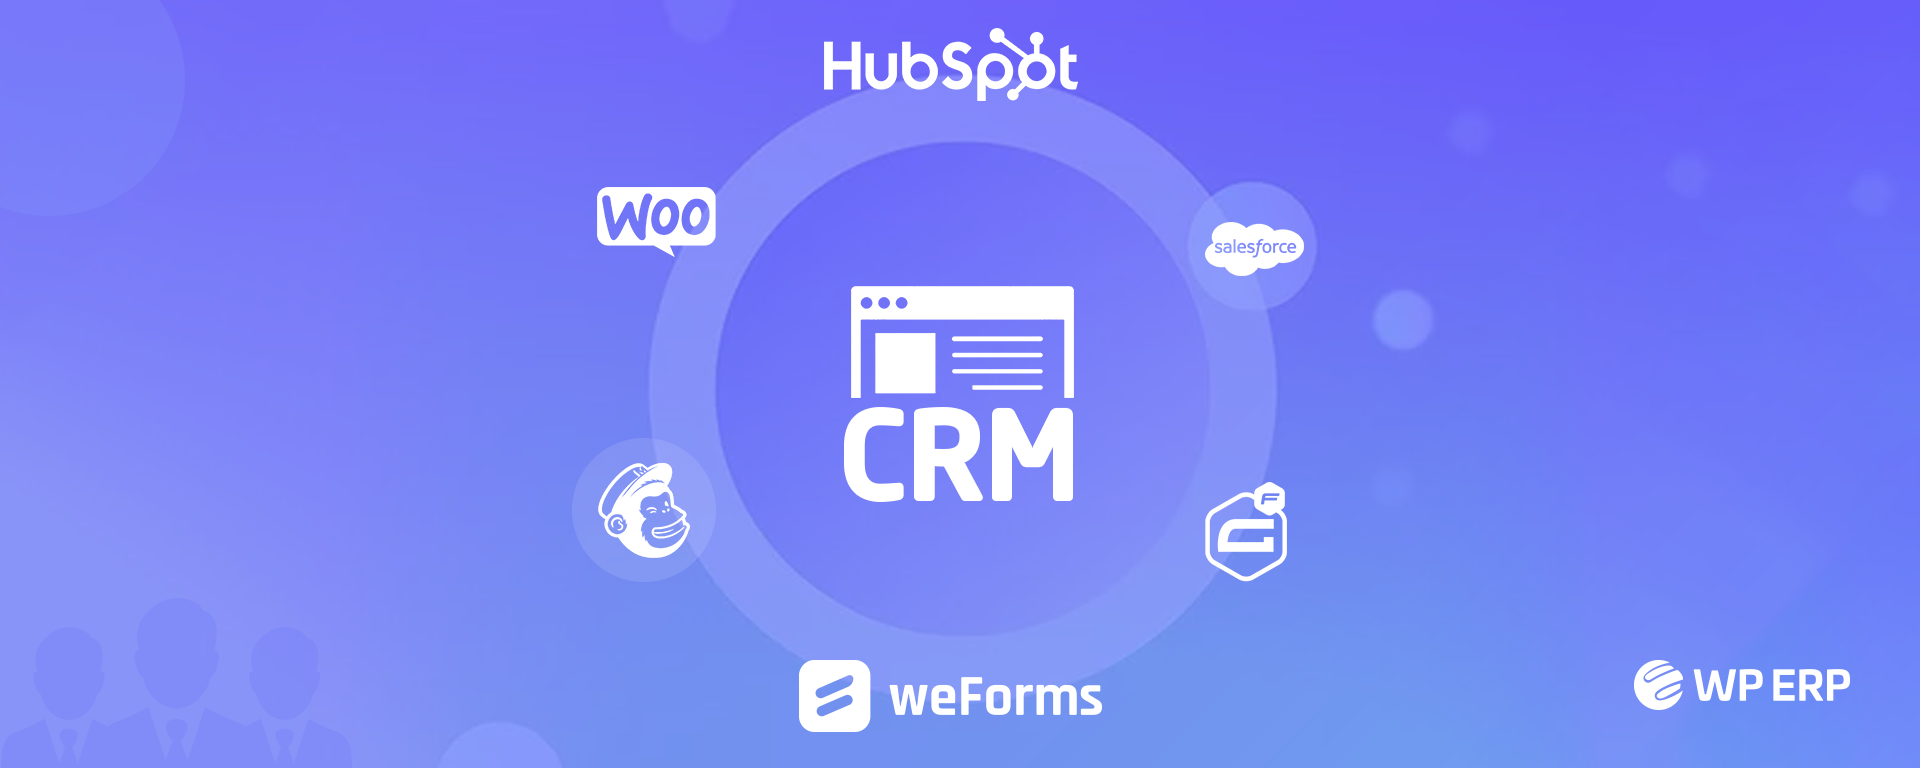 Thinking About Implementing CRM? Consider These Tips First